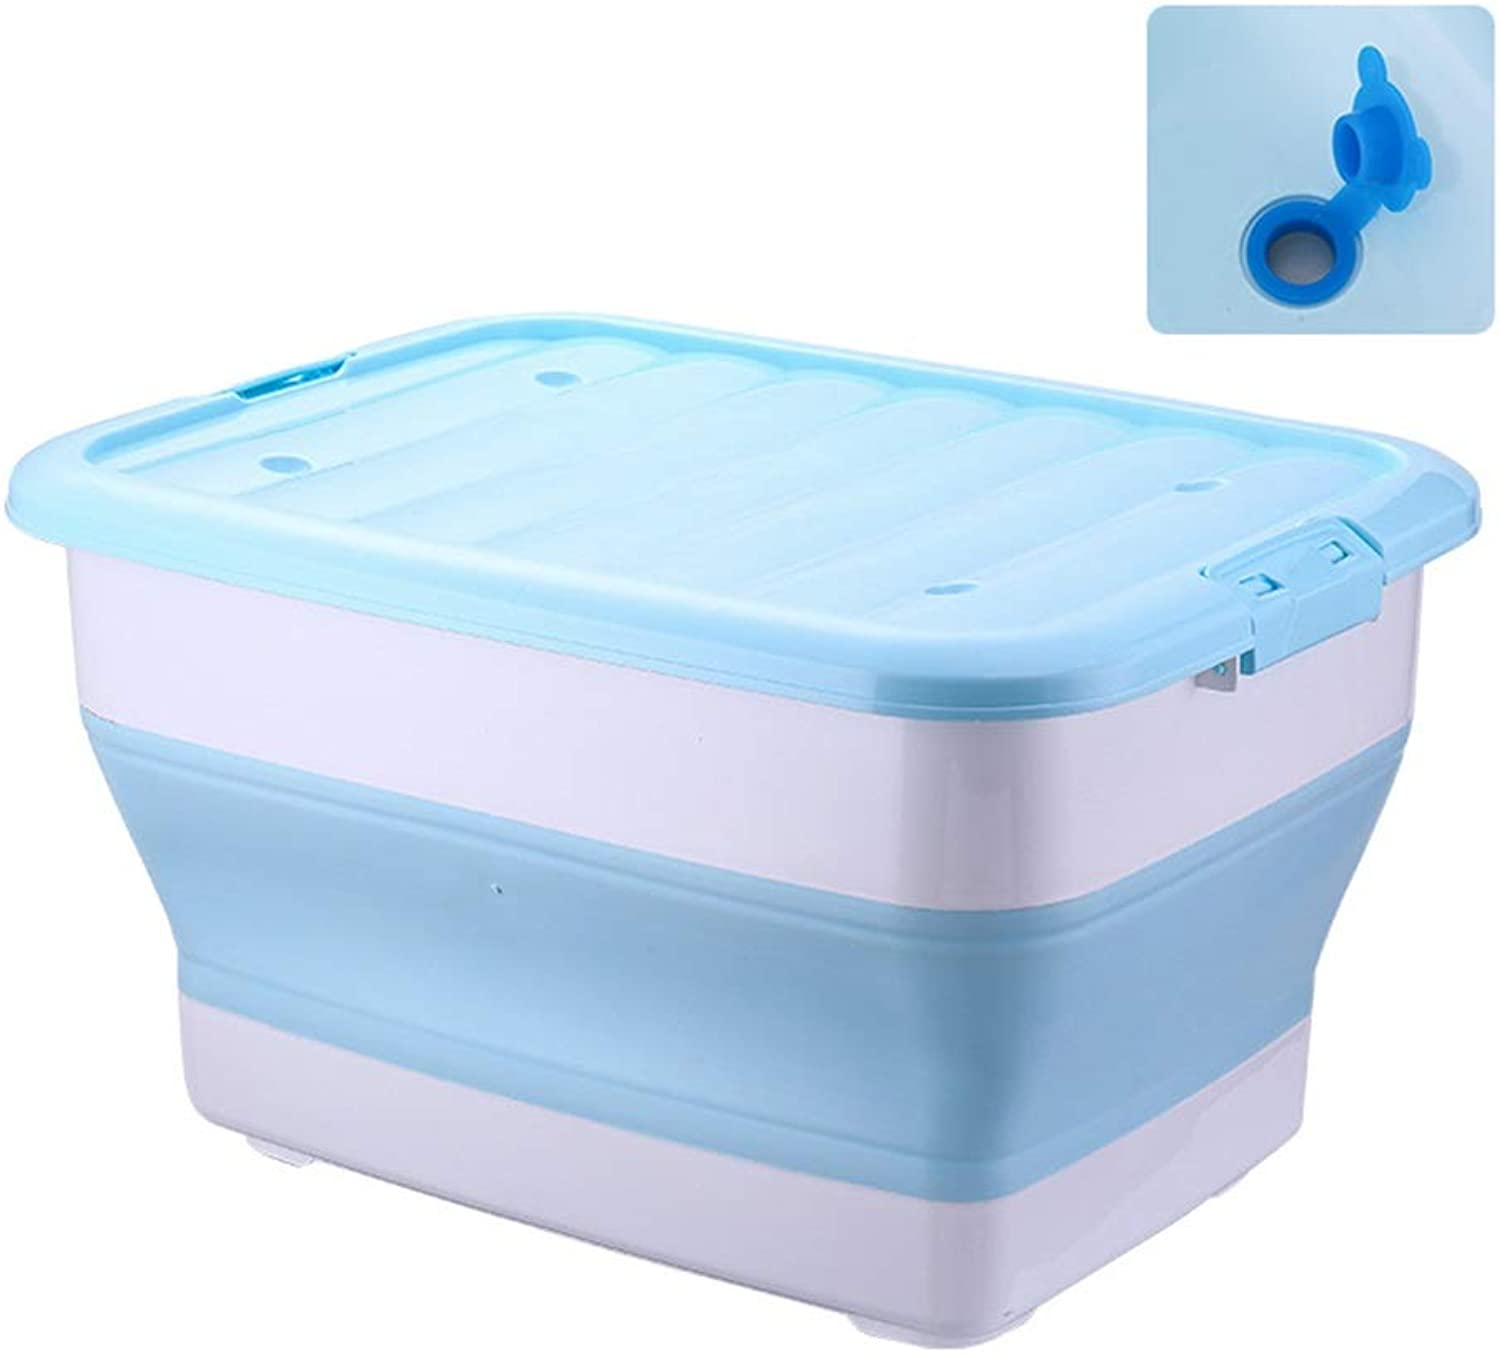 ZHANGQIANG Storage Basket Laundry Basket Plastic Large Storage Box with Lids (color   bluee with Water Holes, Size   A)